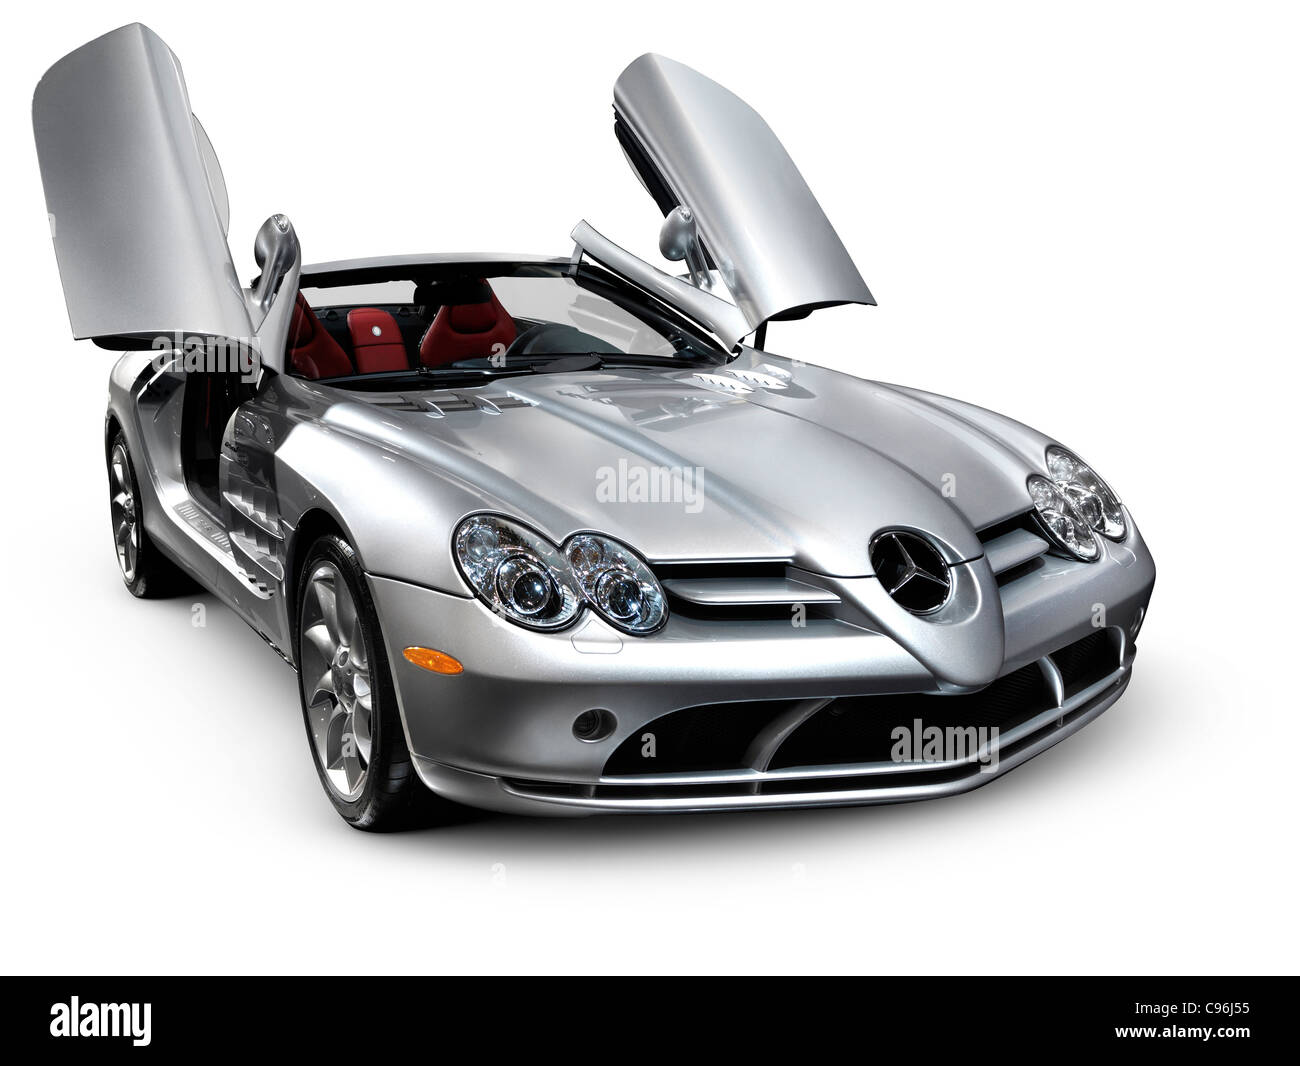 Mercedes Benz SLR McLaren Roadster Anglo-German sports car Isolated silhouette with clipping path on white background - Stock Image